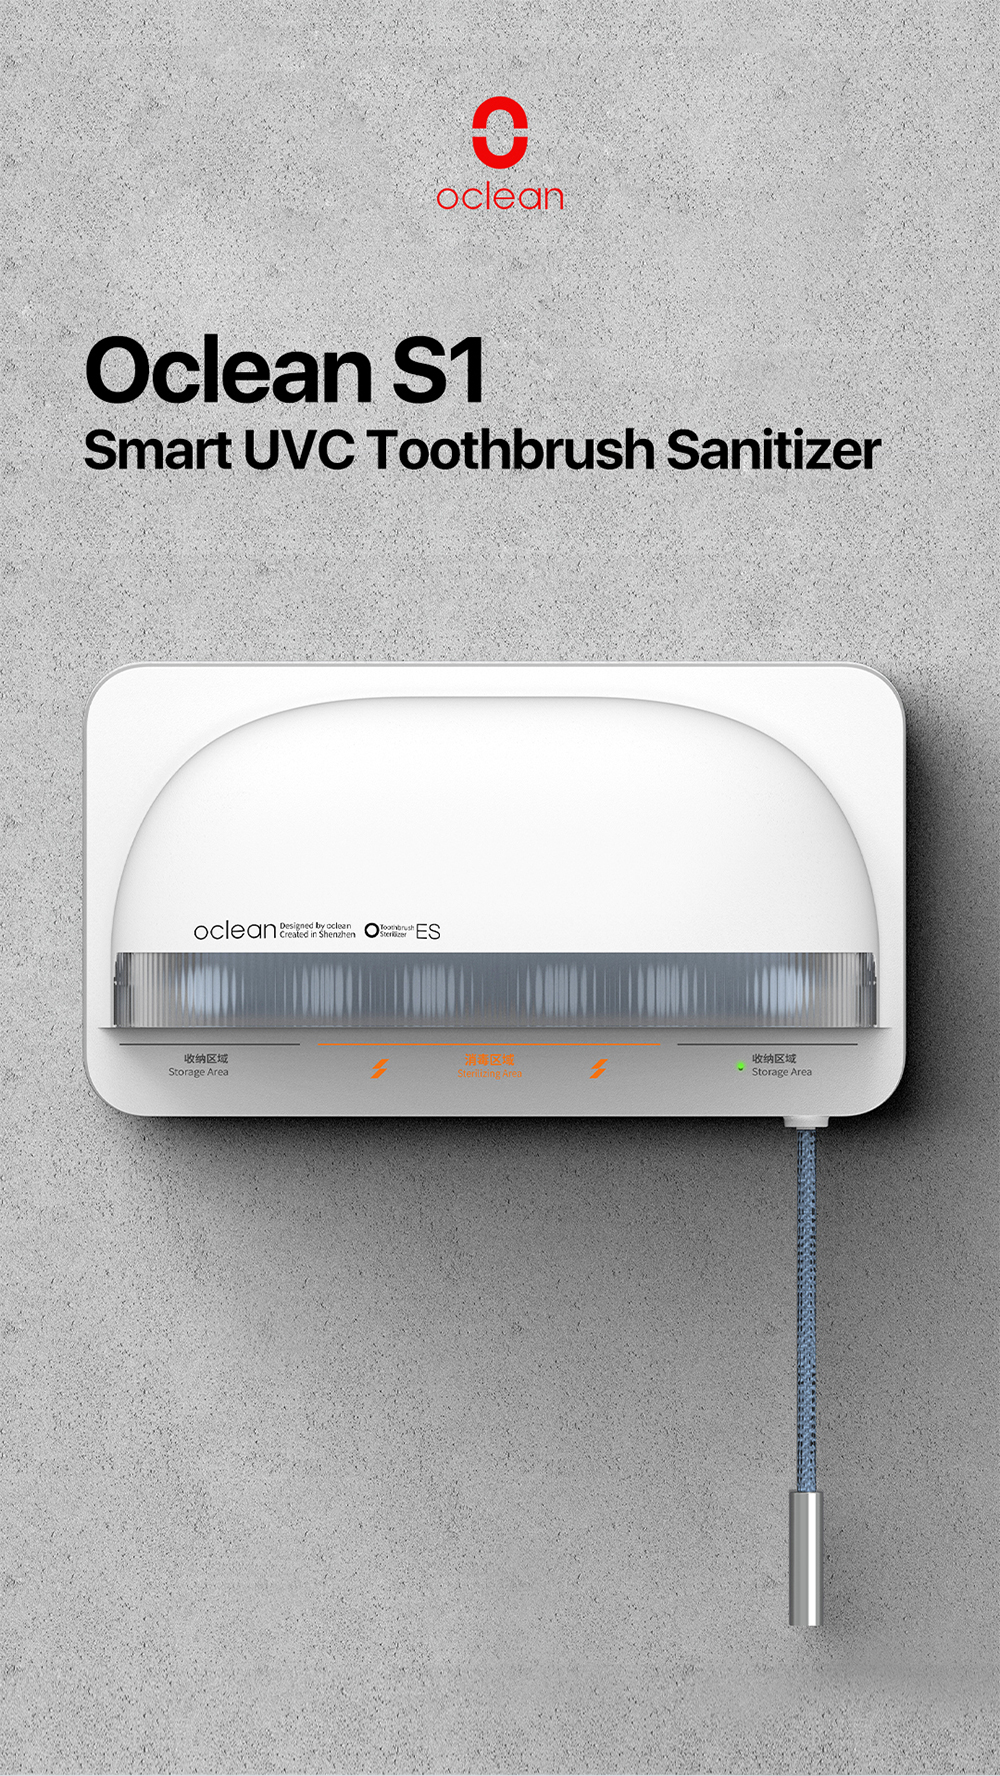 Oclean S1 Smart UVC Toothbrush Sanitizer Manual Automatic Sterilizer Ultraviolet Antibacterial Holder